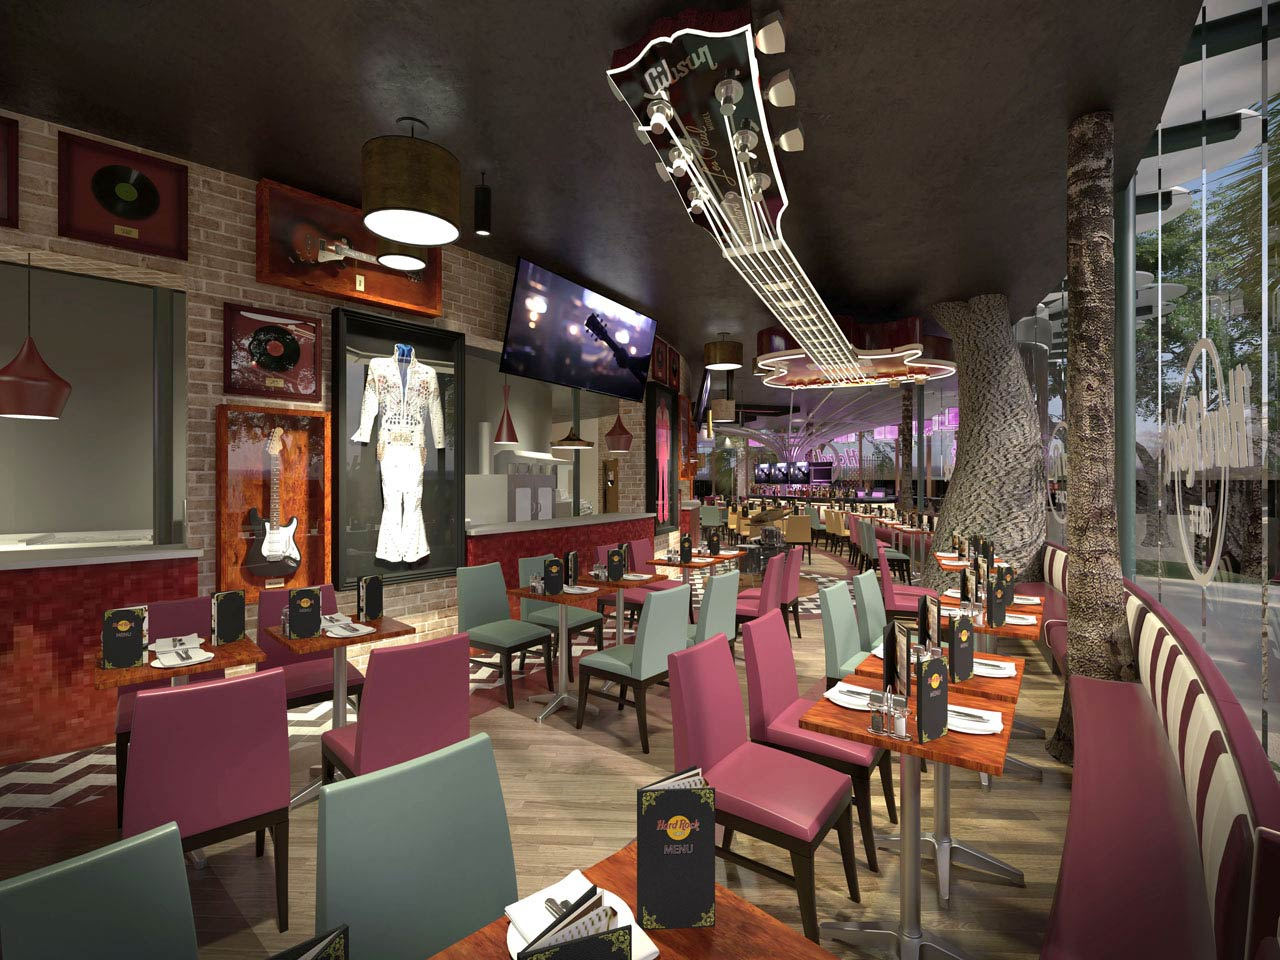 Hard Rock Café interior CGI showing a giant roof-mounted neon guitar